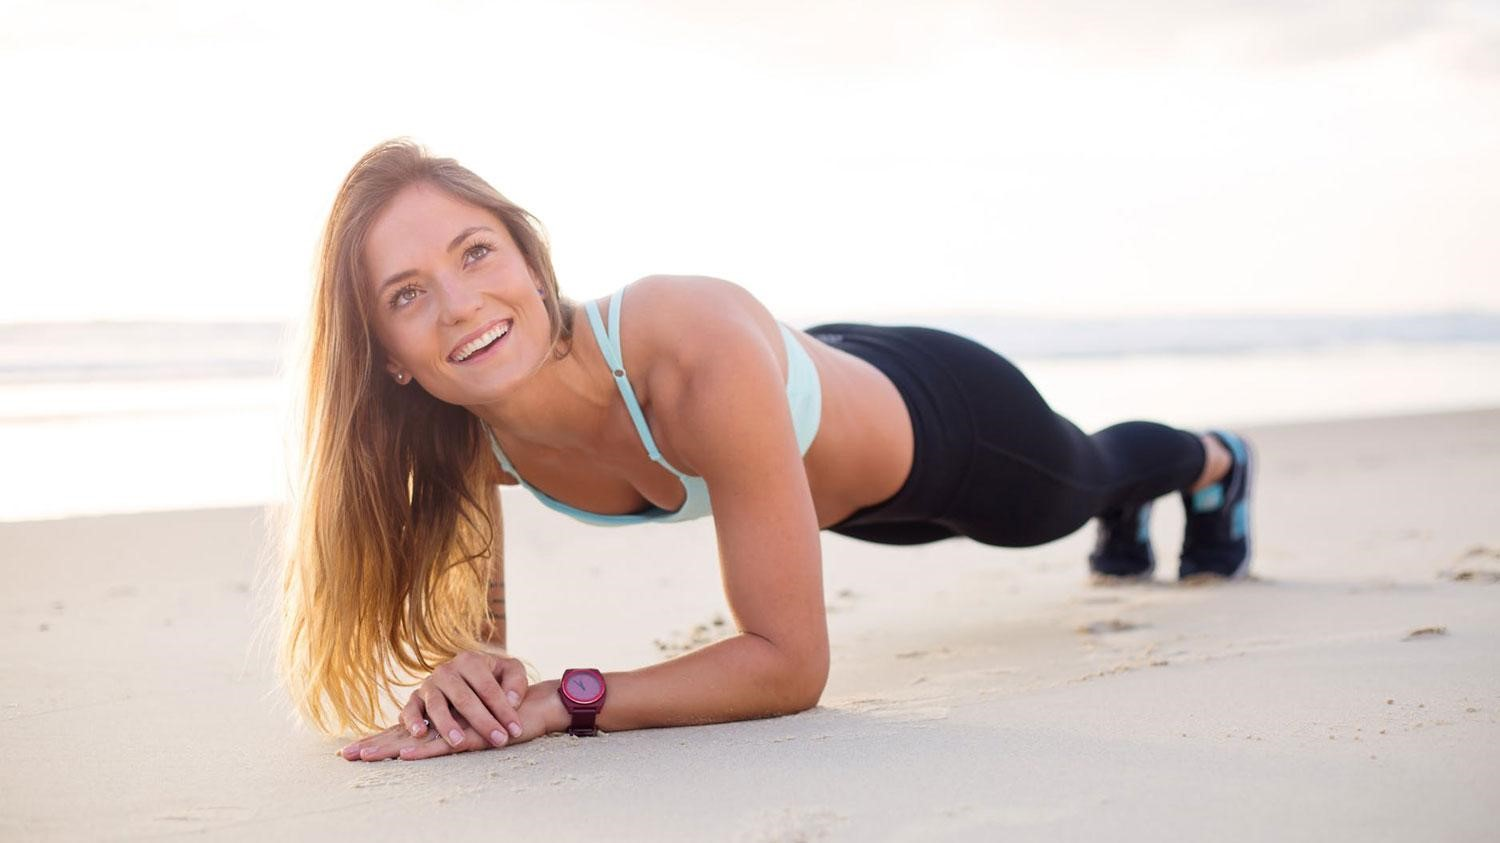 plank-exercises-to-activate-your-core